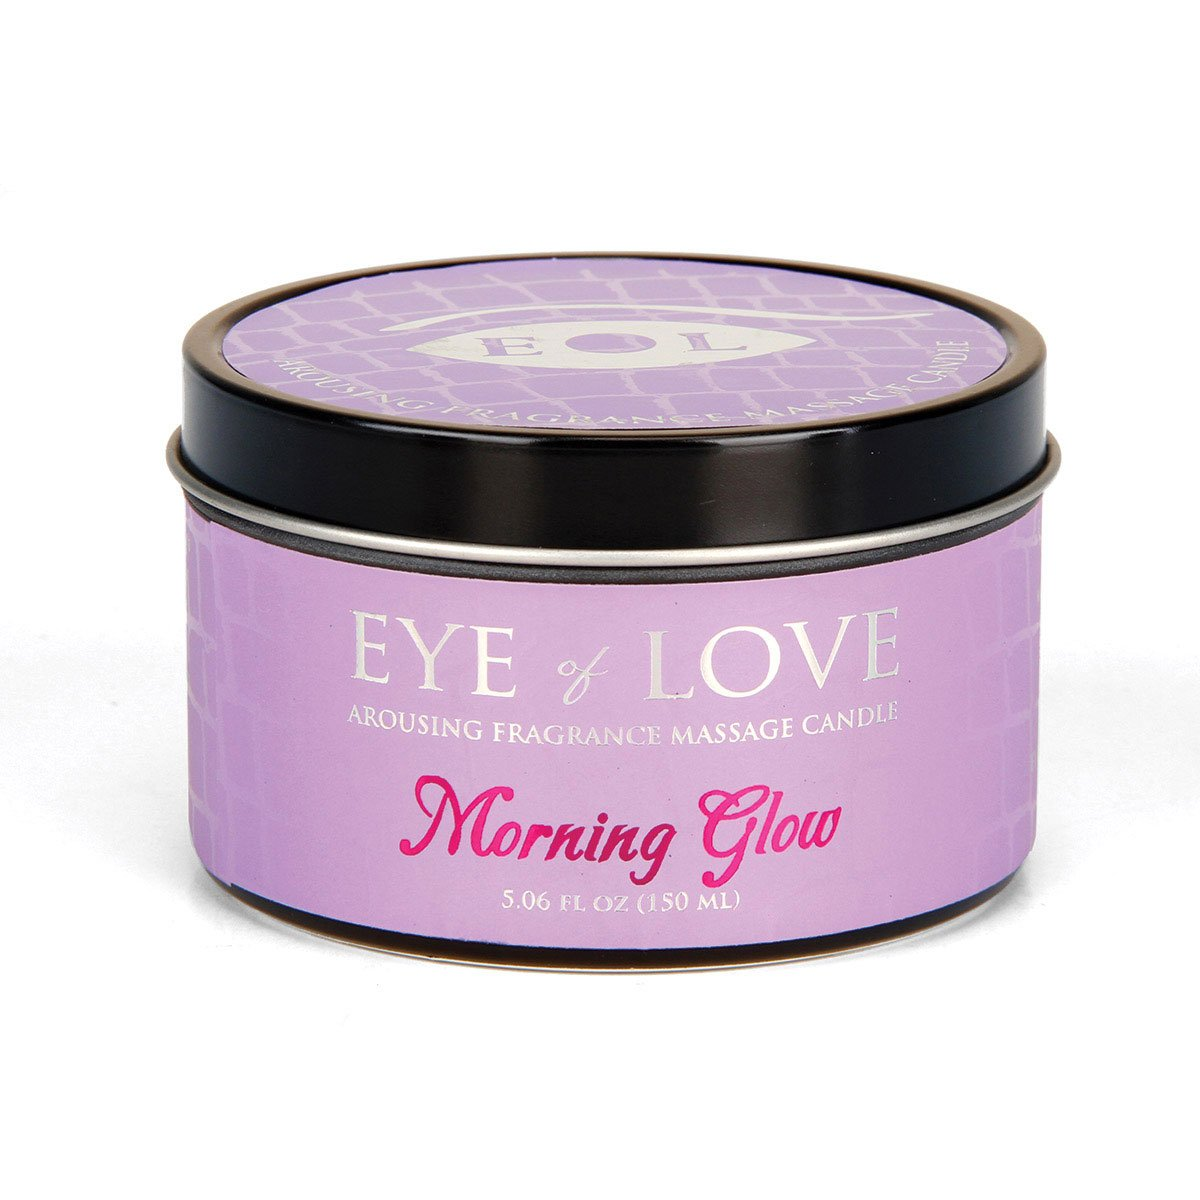 Eye of Love Pheromone Massage Candle 5oz - Morning Glow